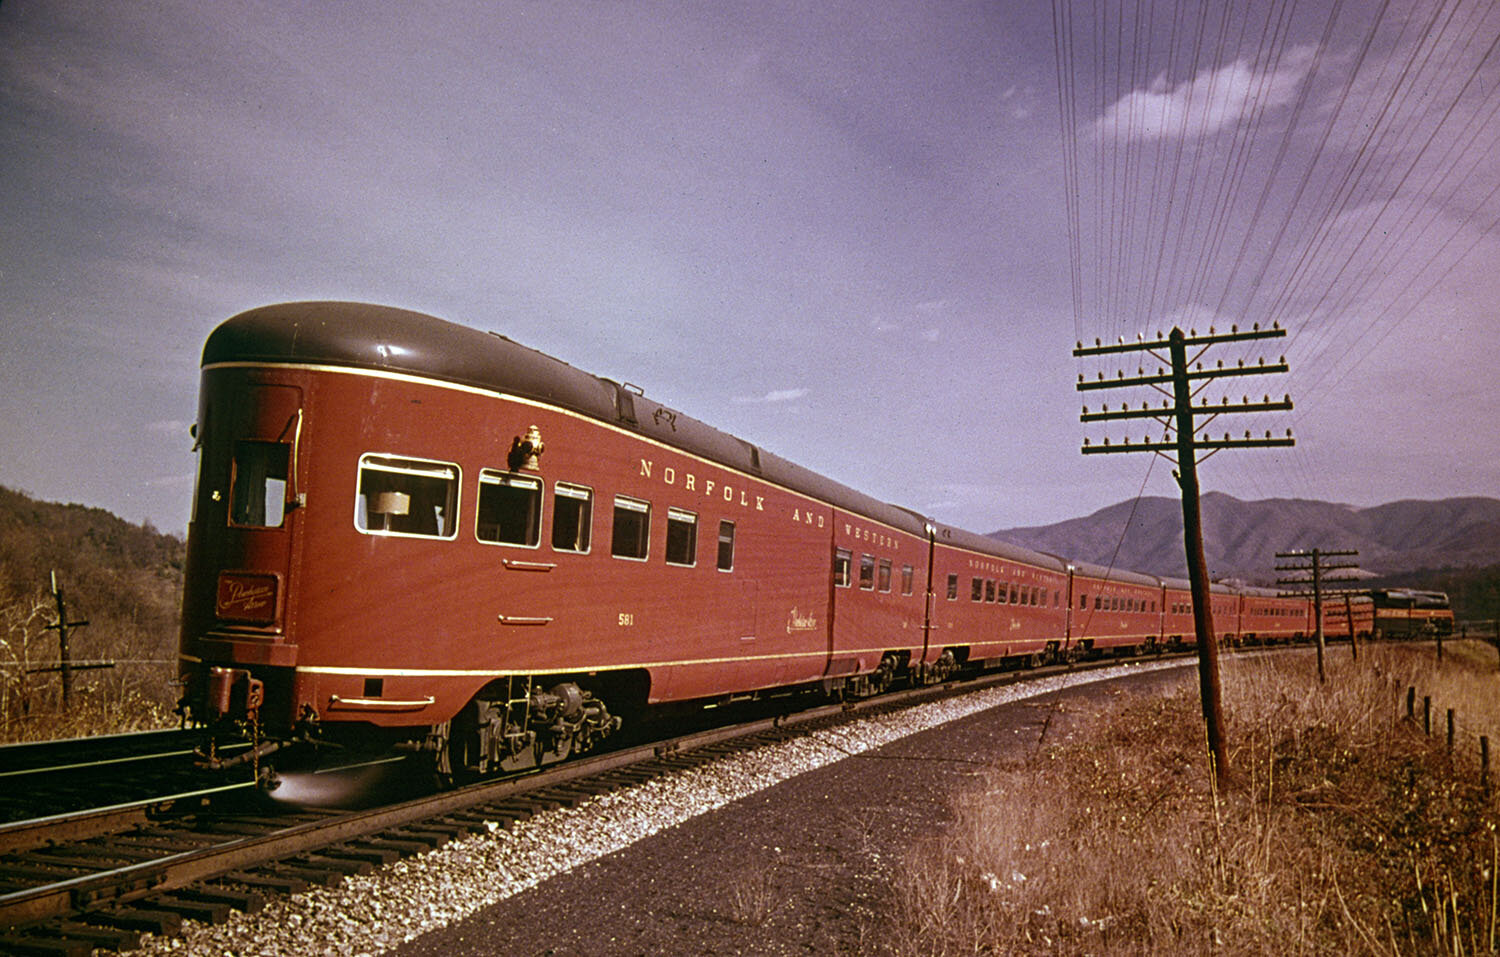 Photograph, the observation car on the Powhatan Arrow, a train that ran from Cincinnati to Norfolk and pulled by the famous Norfolk & Western Class J 611, c. 1954-63. Courtesy Northfolk & Western Historical Society. Image subject to copyright laws.